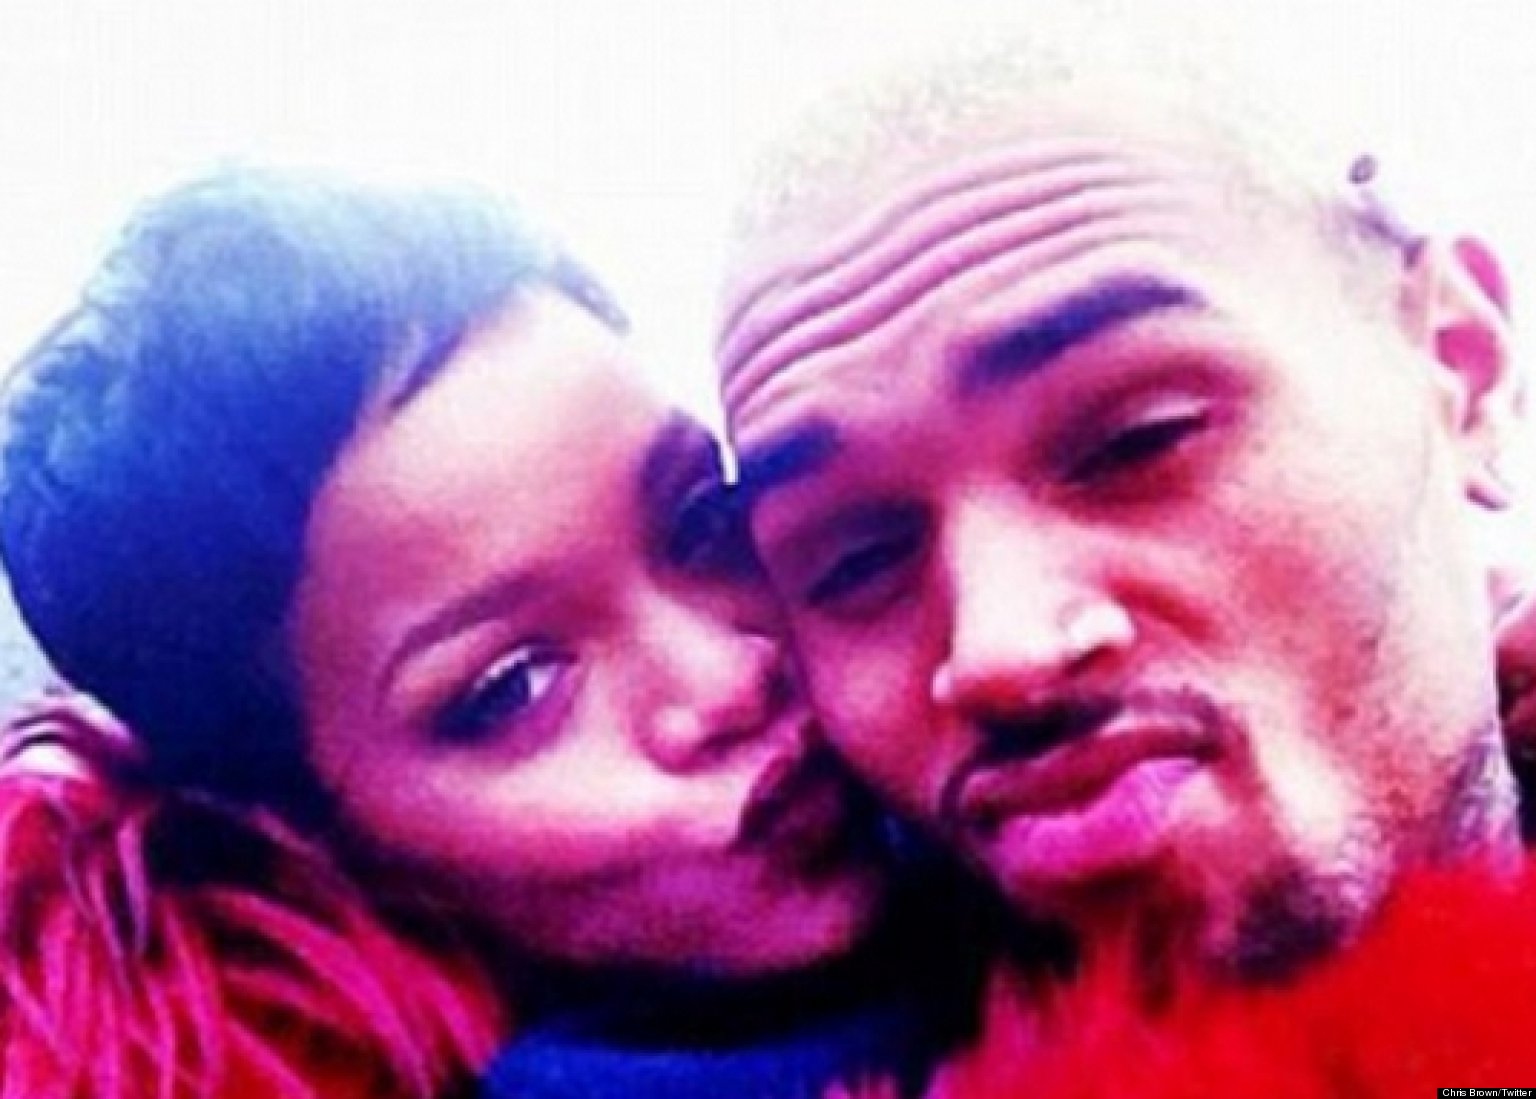 chris brown and rihanna 12 september 2018 rihanna fenty and chris brown photos, news and gossip find out more about.